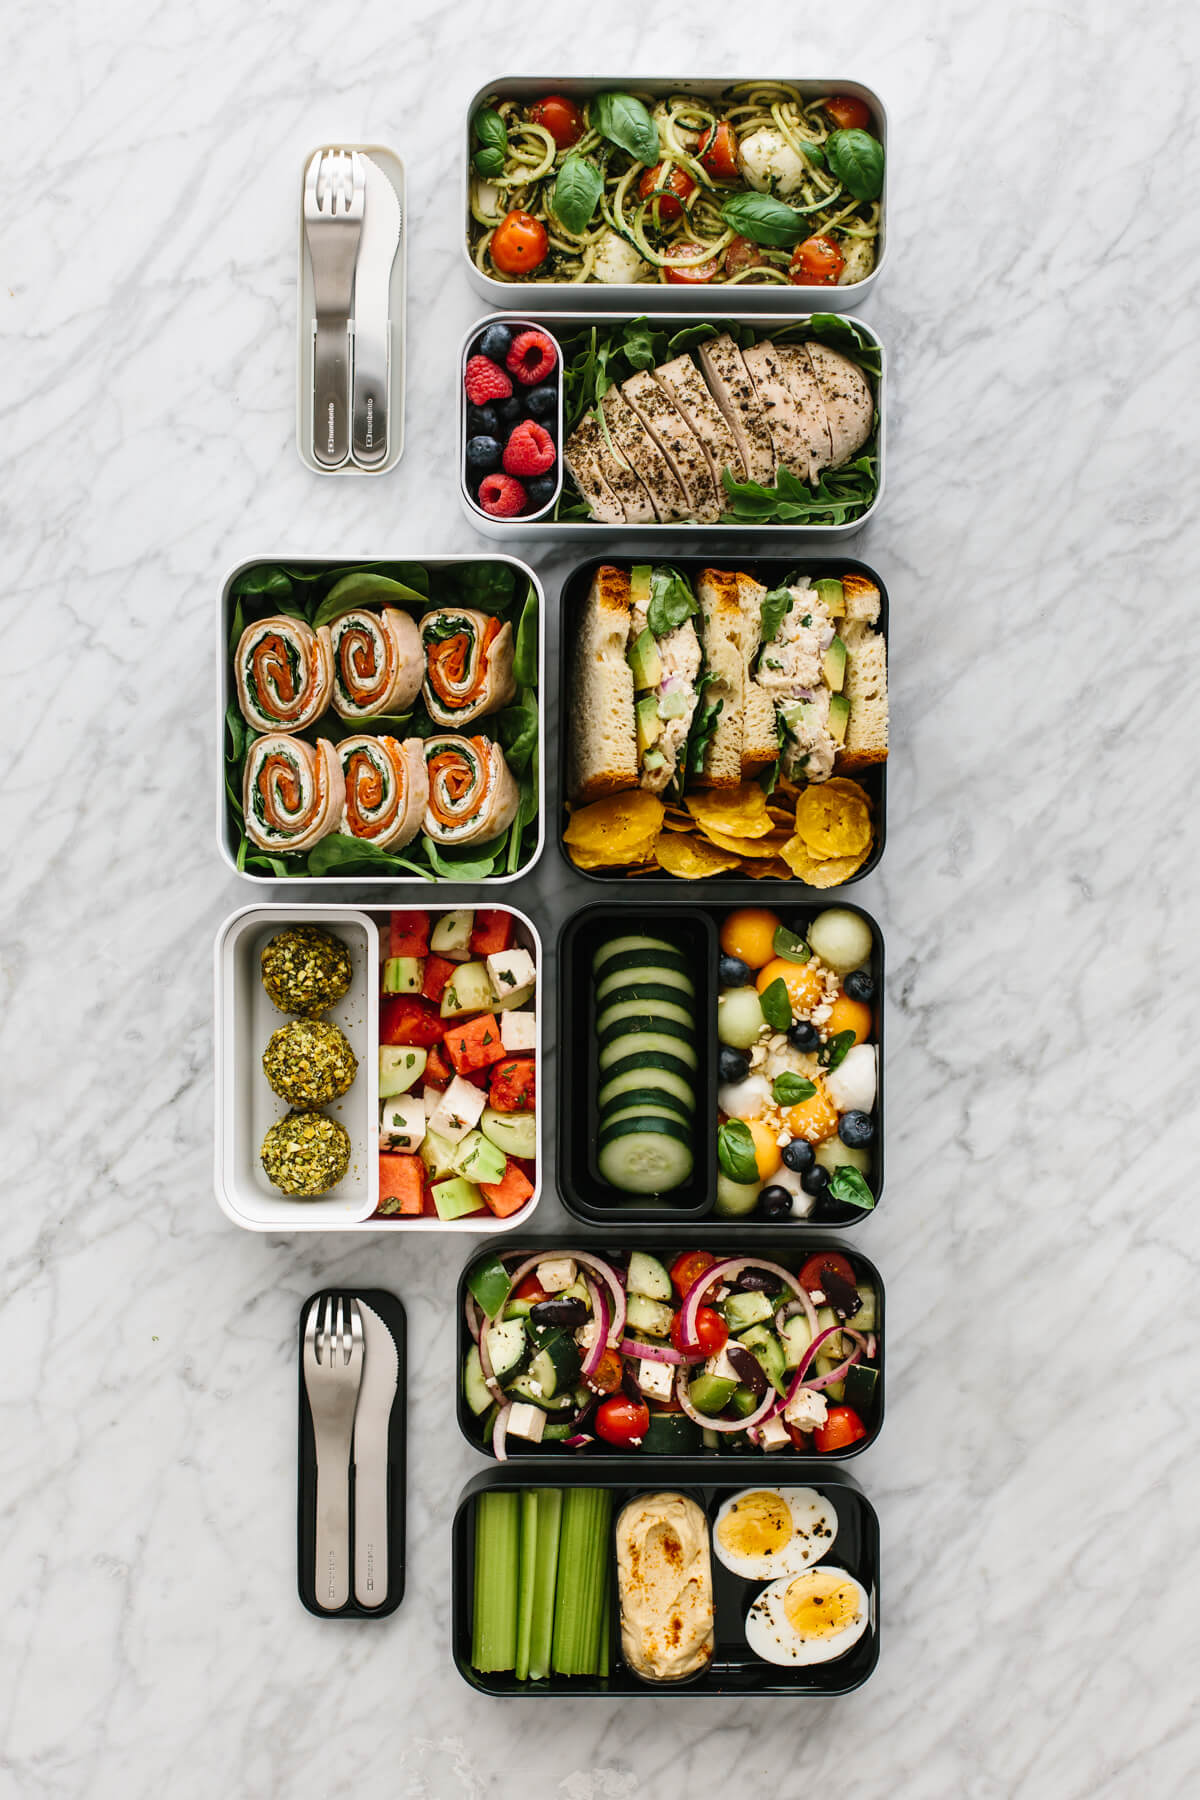 Several bento box lunches arranged next to each other on a countertop.